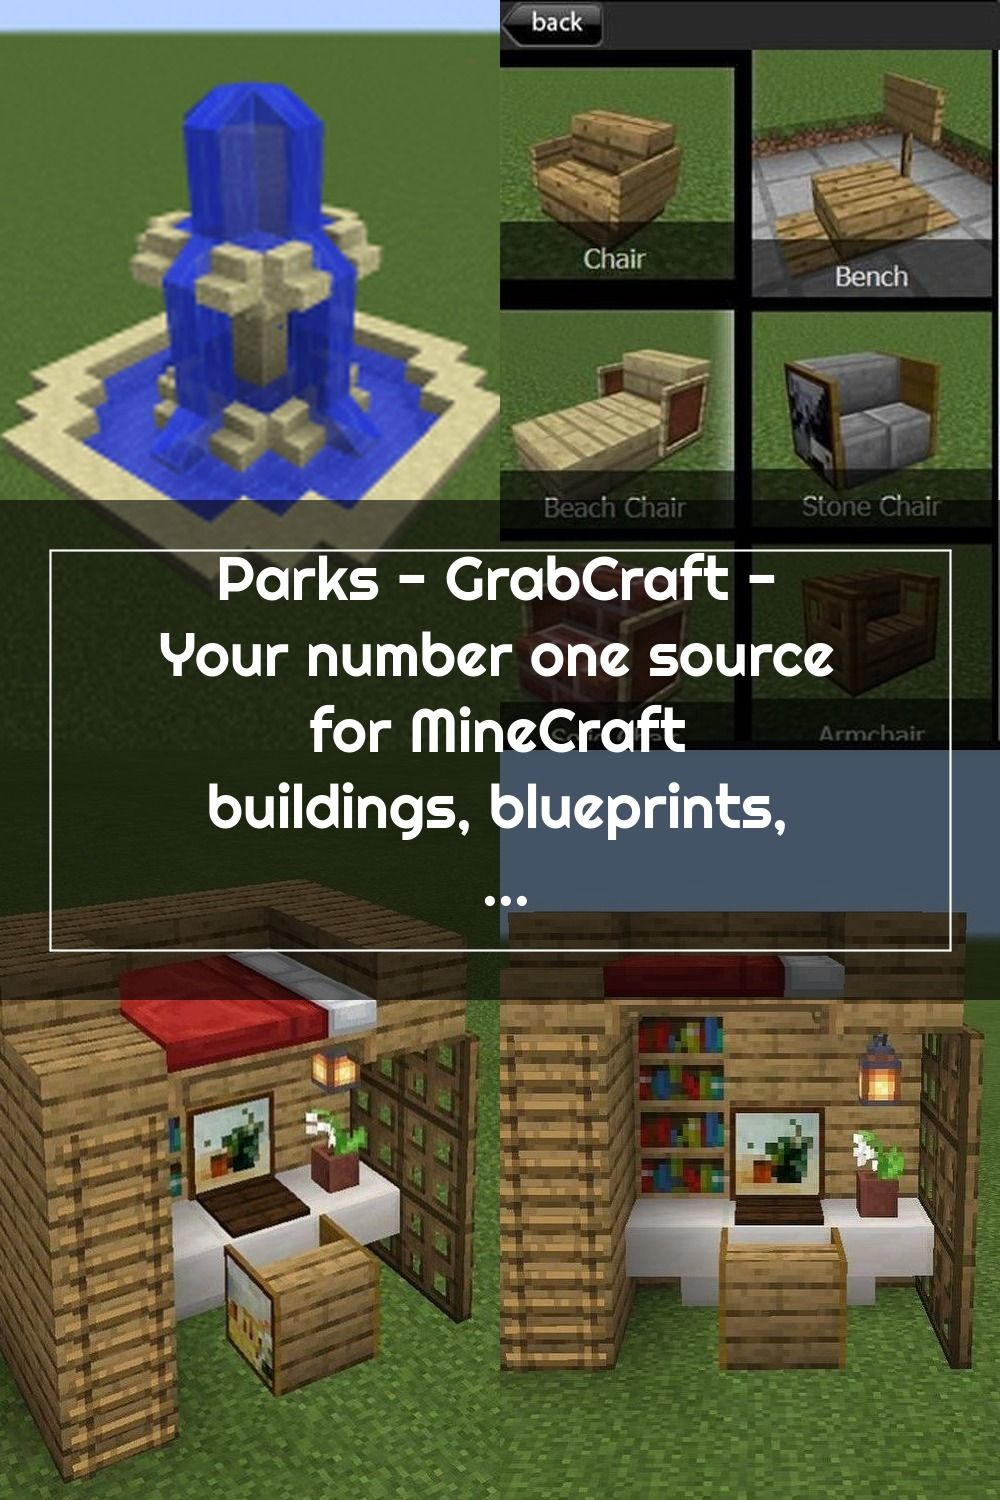 Parks Grabcraft Your Number One Source For Minecraft Buildings Bluepri In 2020 Minecraft Minecraft Buildings Building